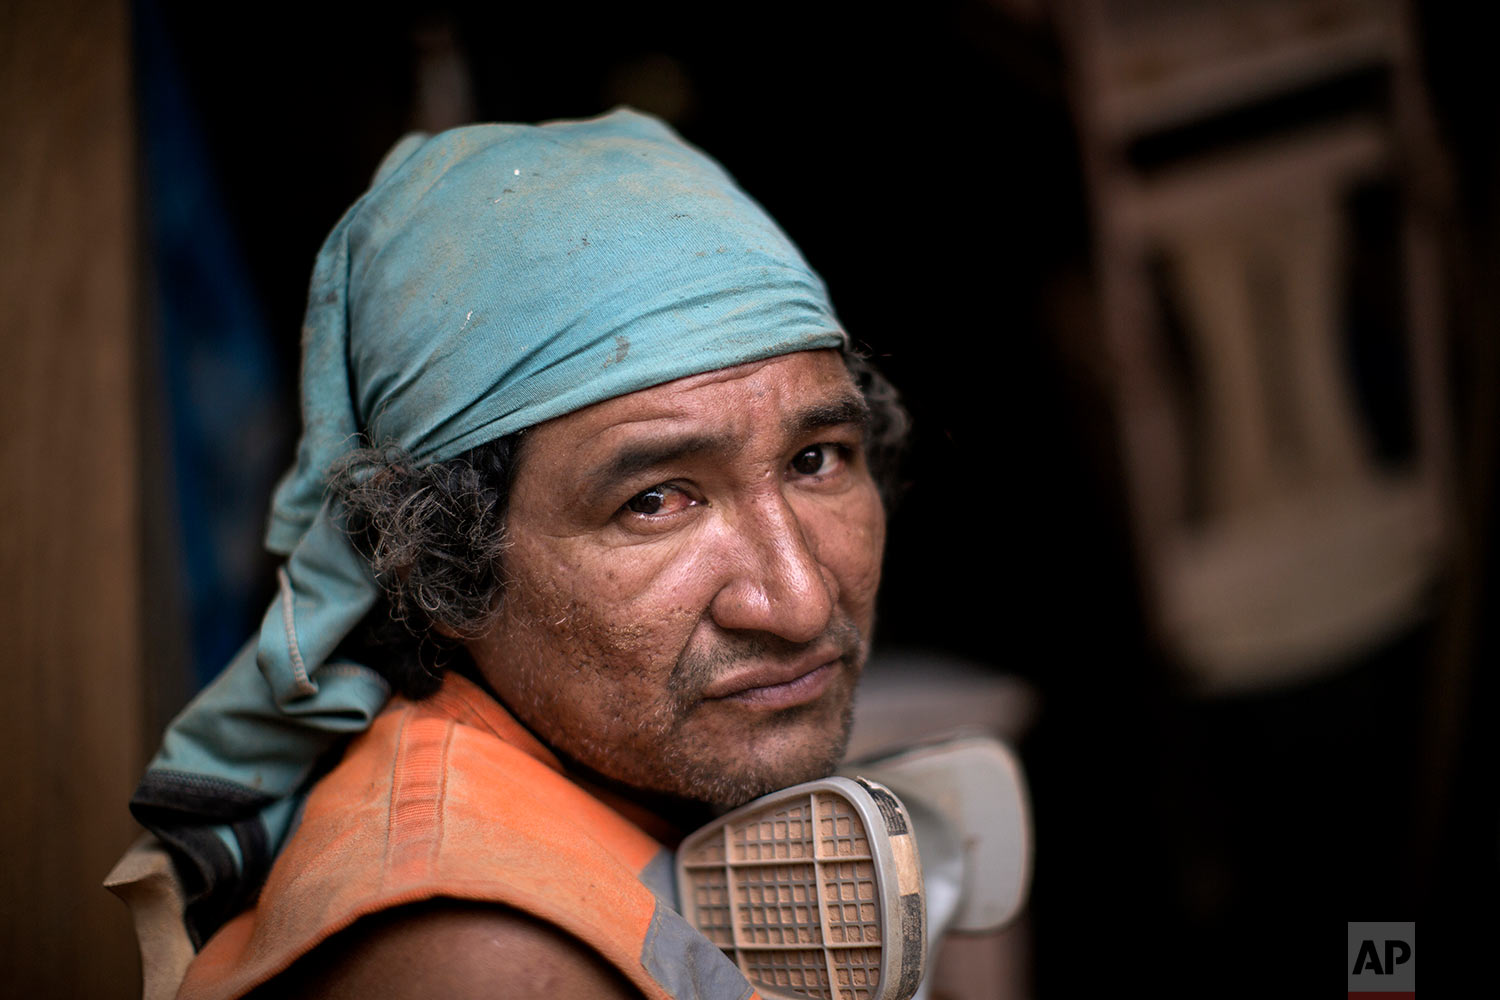 In this Jan. 12, 2018 photo, inmate Roy Ruiz Flores, 44, pauses for a portrait as he rests from building chairs to be used during the visit by Pope Francis to Puerto Maldonado, Madre de Dios province, Peru. Prisoners convicted of crimes like robbery and drug trafficking at this prison in the Peruvian Amazon are using their time behind bars to build simple wooden chairs that indigenous leaders will use while meeting with Pope Francis. (AP Photo/Rodrigo Abd)| See these photos on AP Images